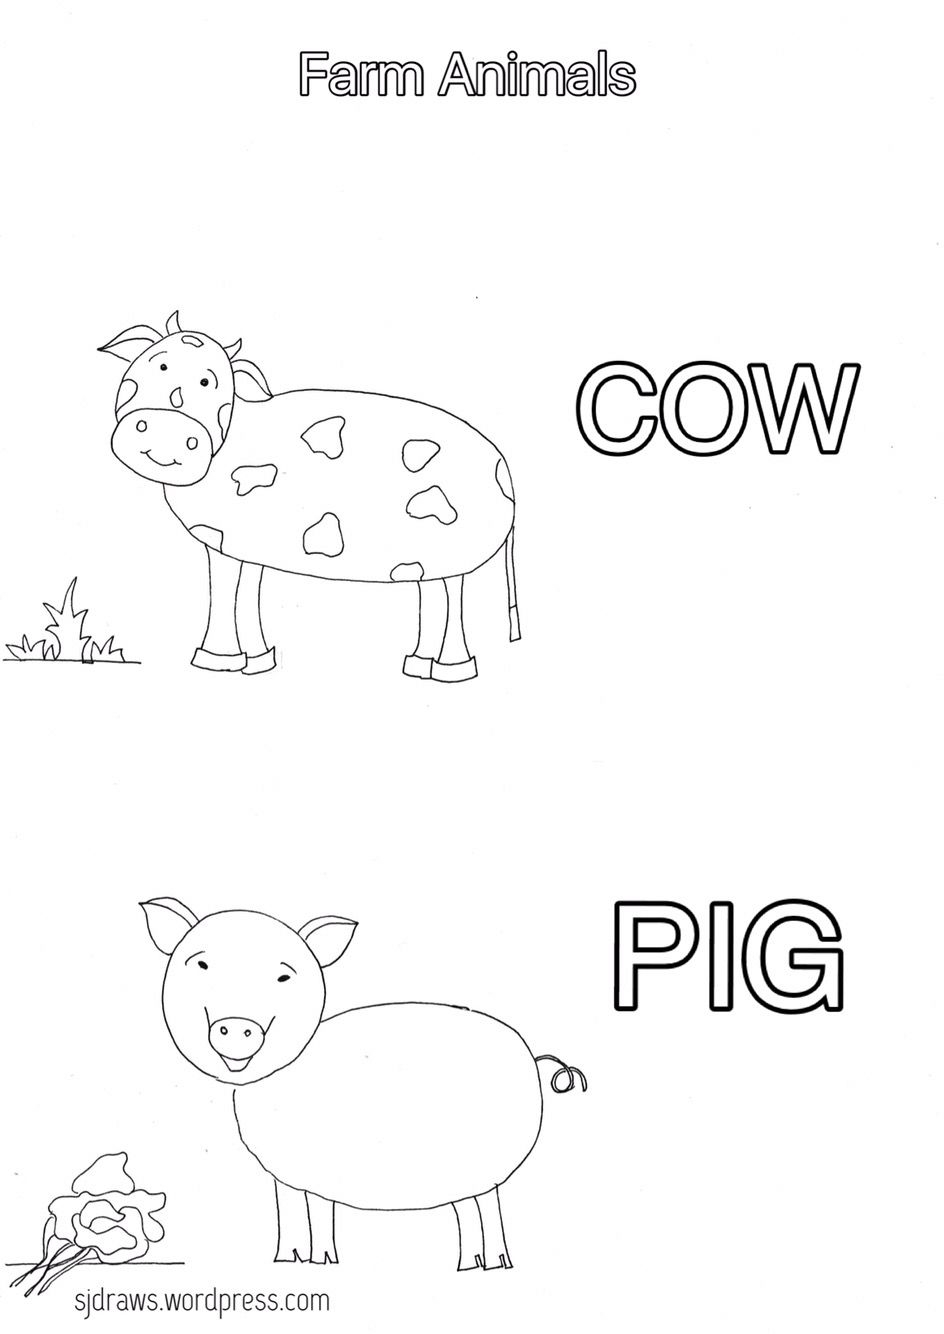 Coloring pages- Farm animals- cow, pig | Coloring pages | Pinterest ...